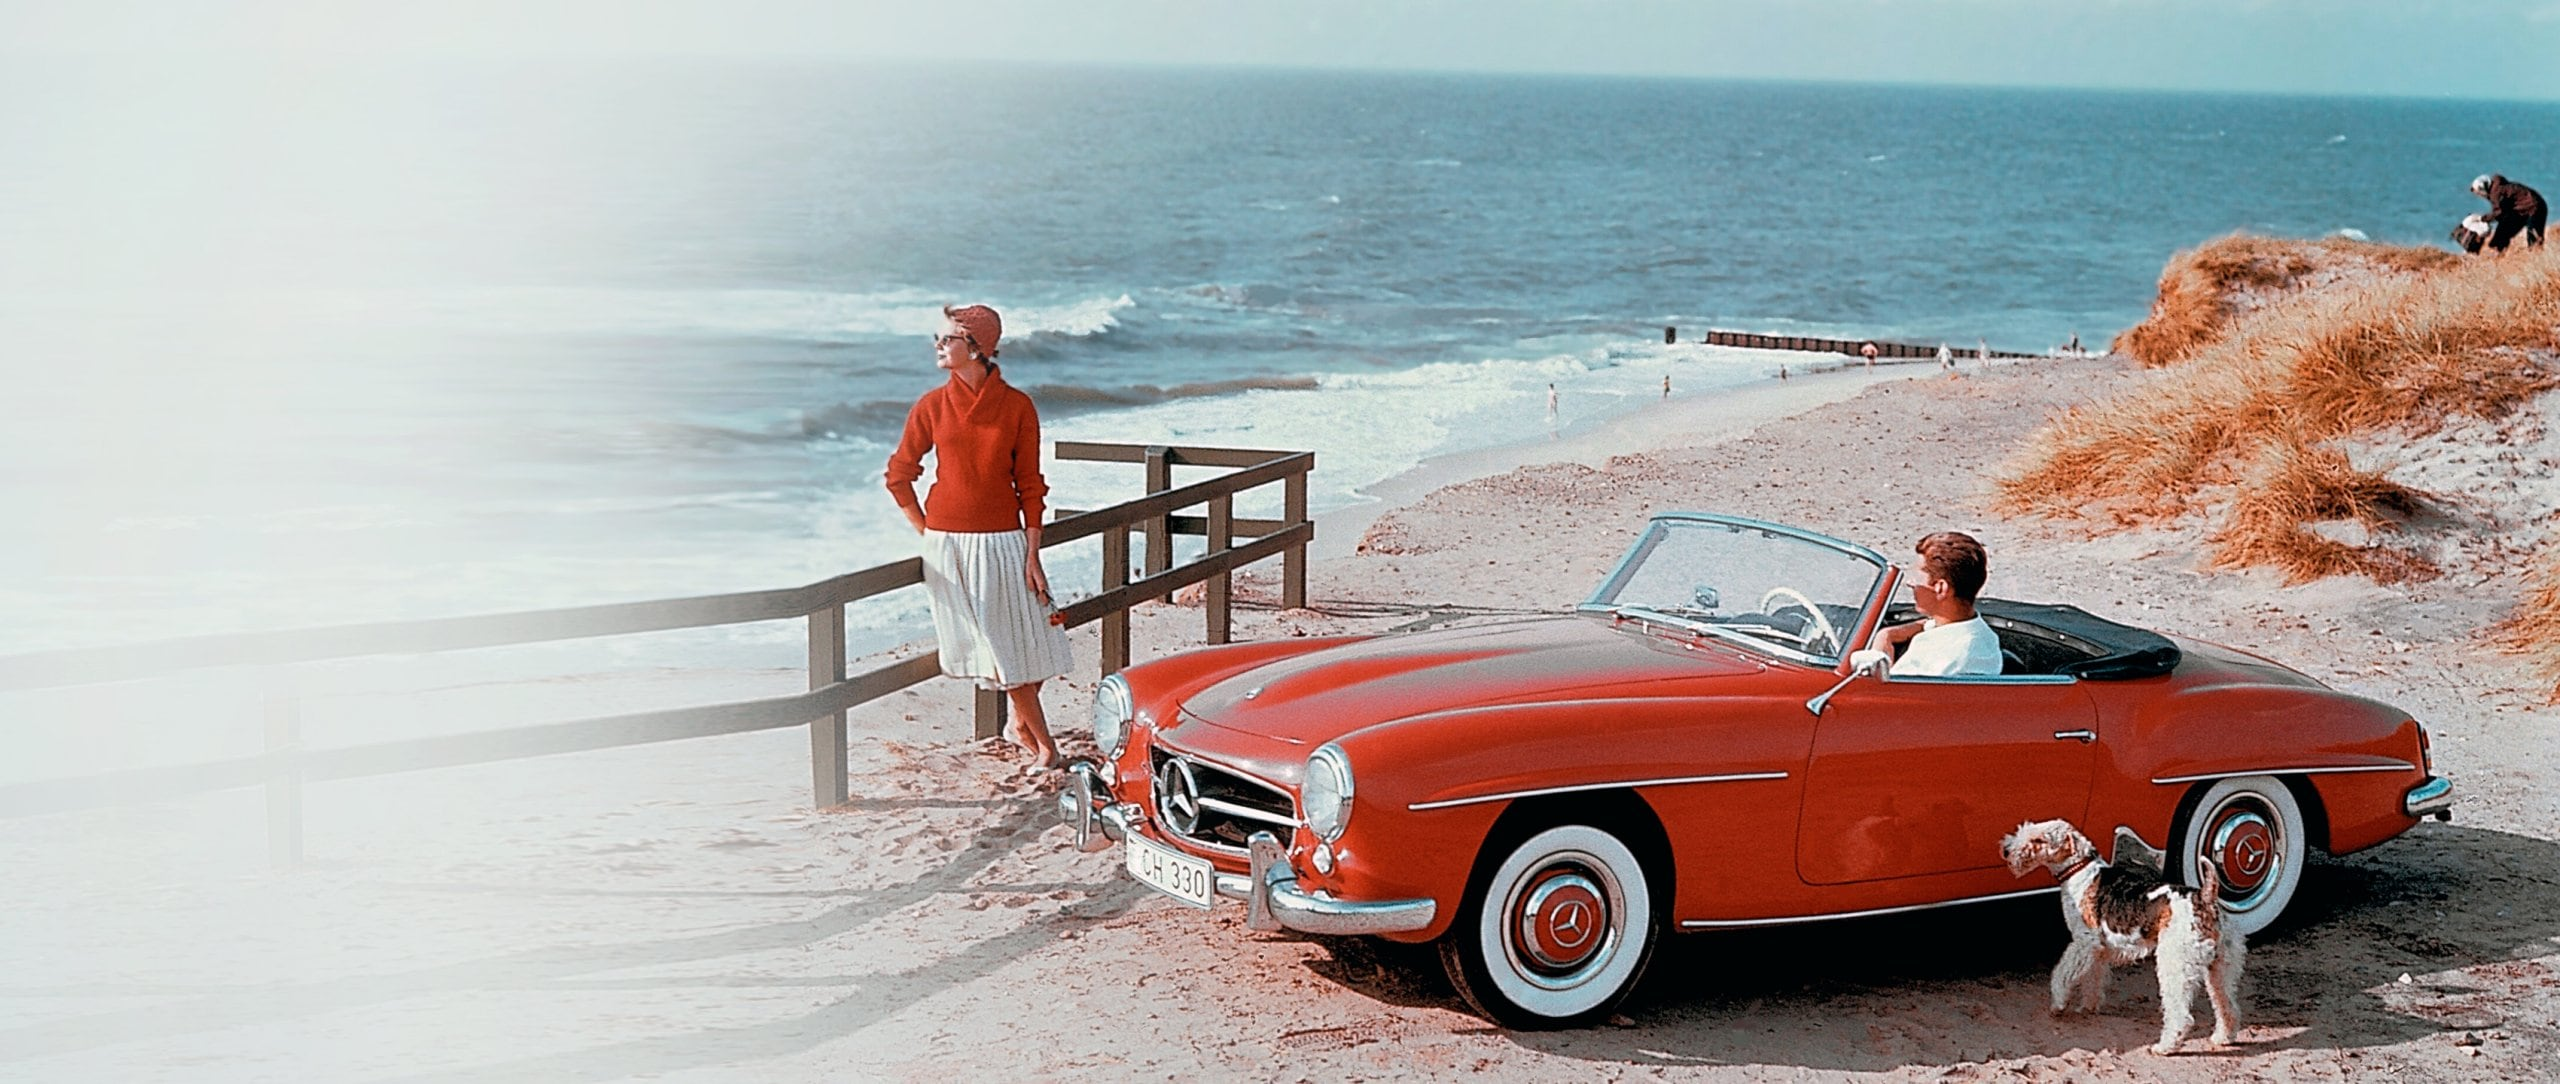 A Mercedes-Benz 190 SL (W 121) on holiday on the beach on the island of Sylt.